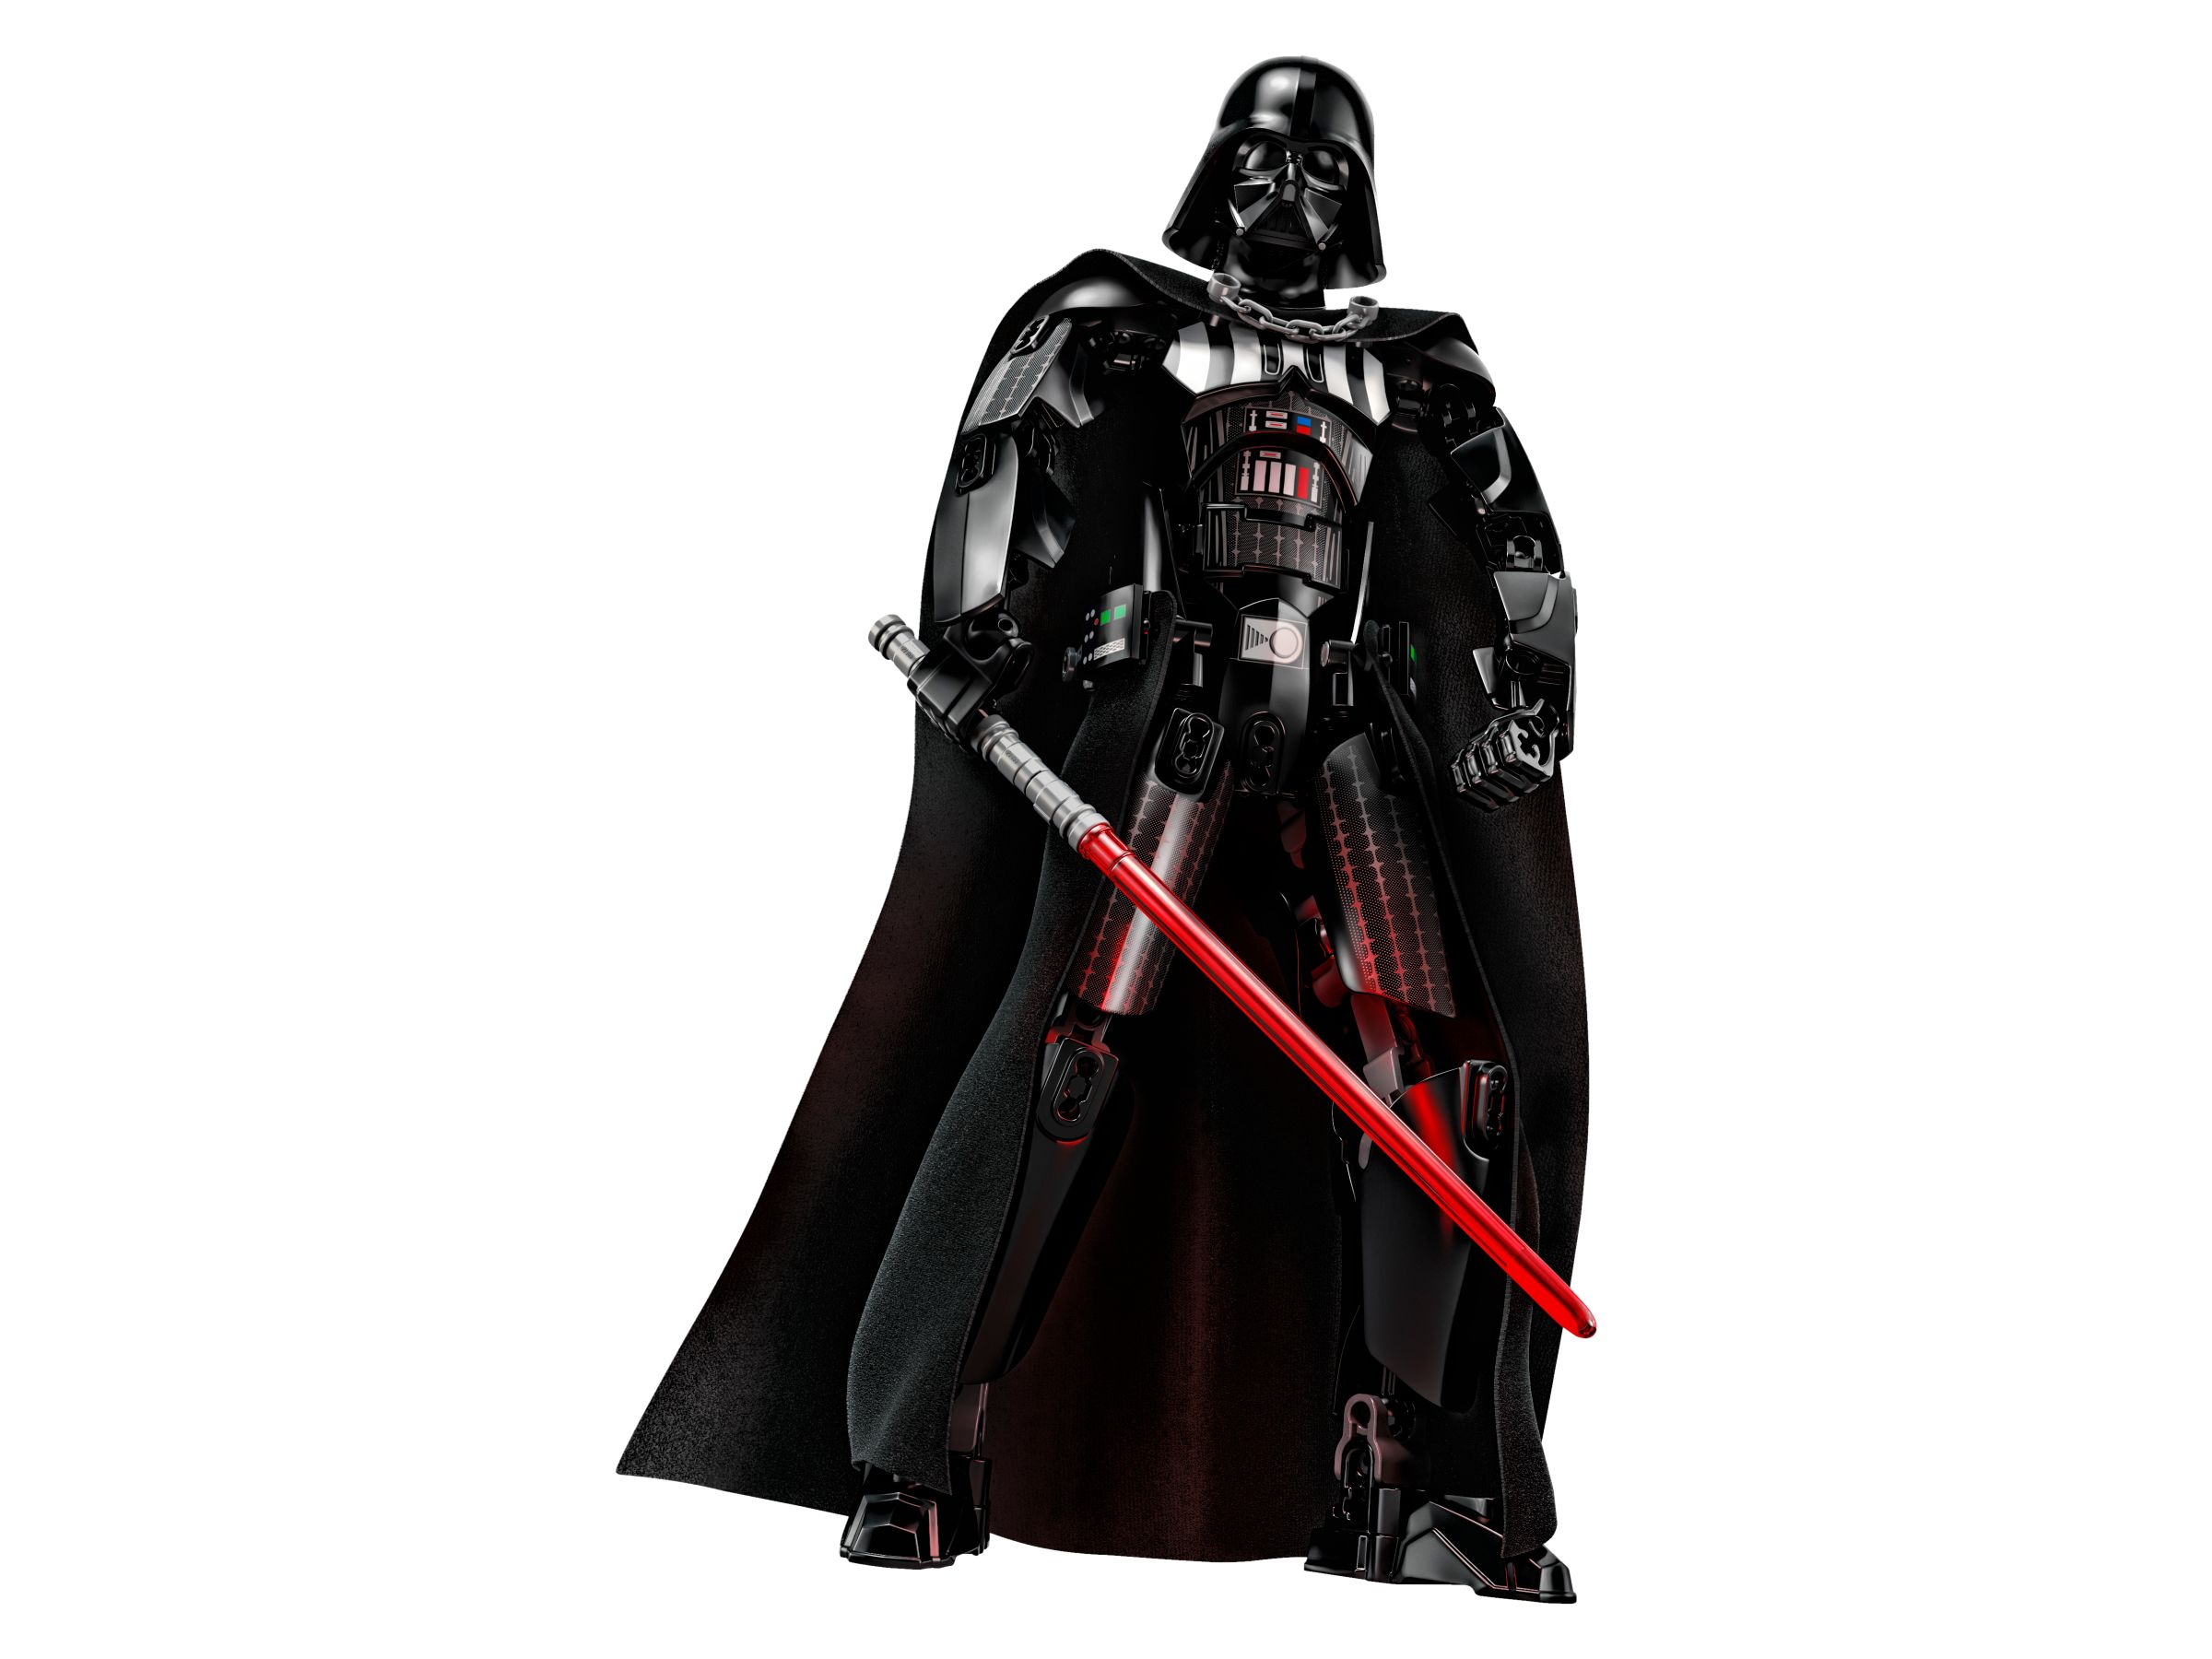 LEGO Star Wars Buildable Figures 75534 Darth Vader LEGO_75534_alt3.jpg